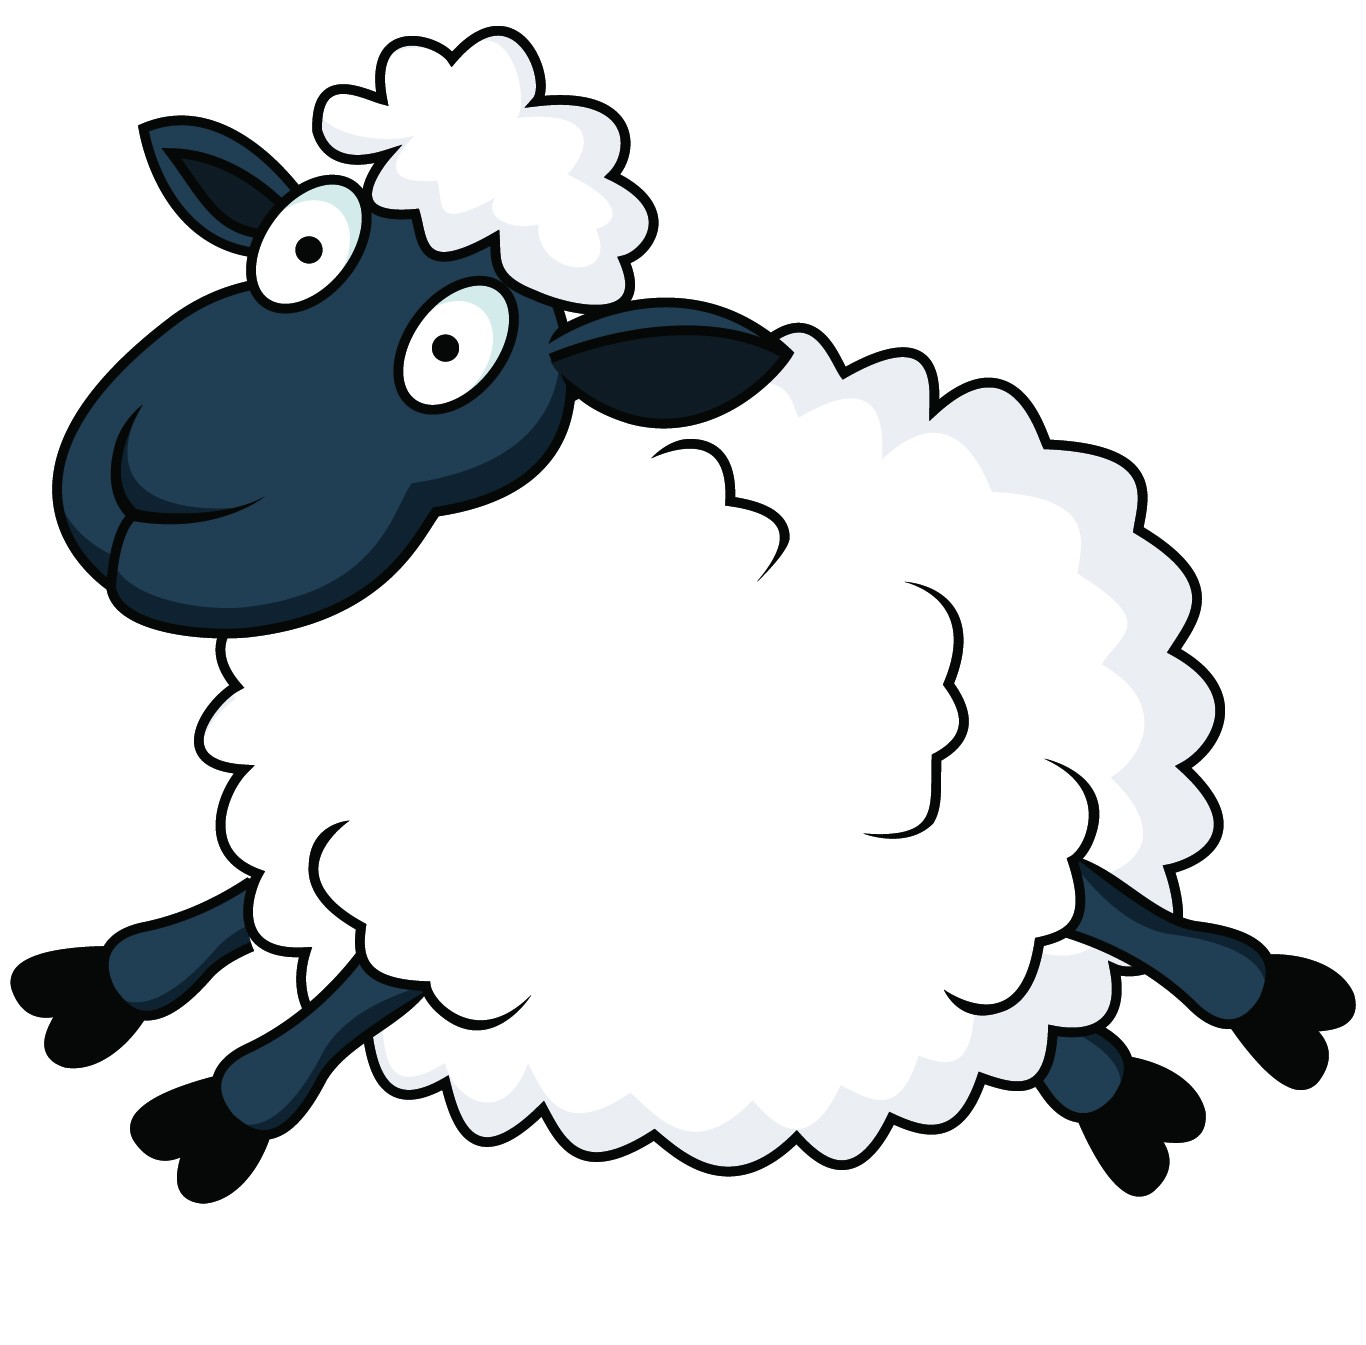 Lamb clipart sheep jump. Free download best on